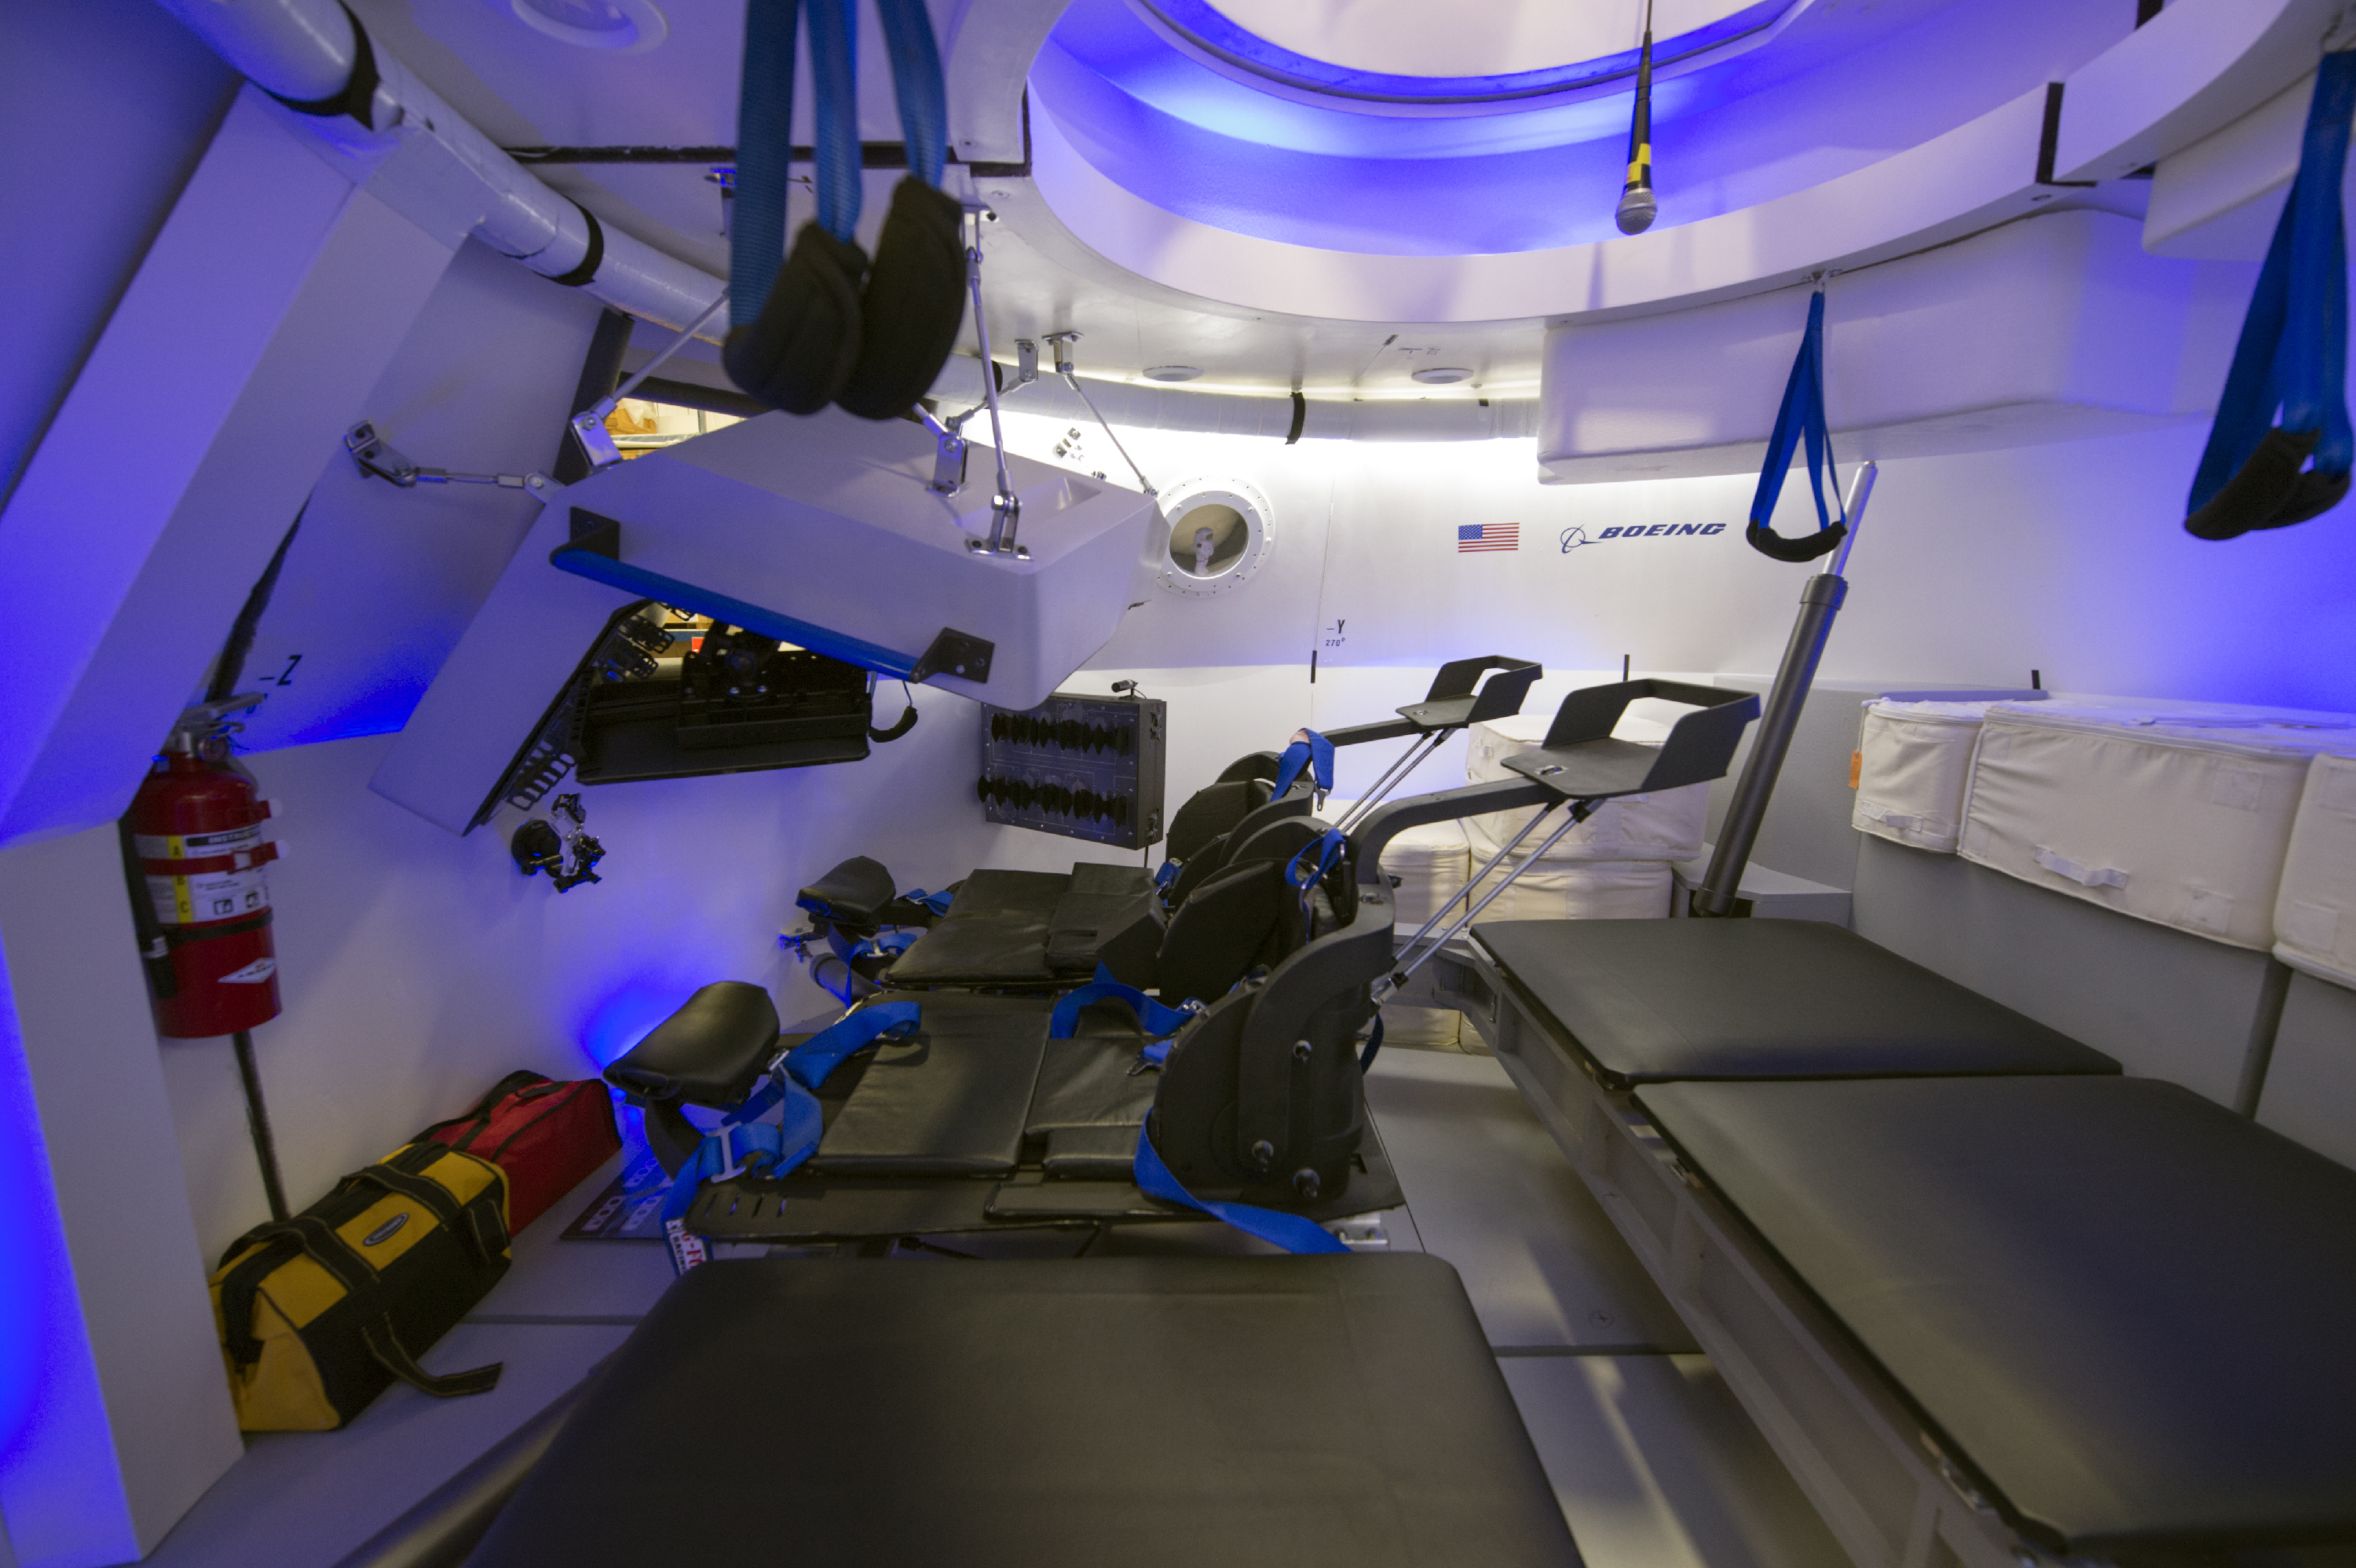 Boeing 39 s new astronaut capsule opens its pod bay doors for for Interieur gov